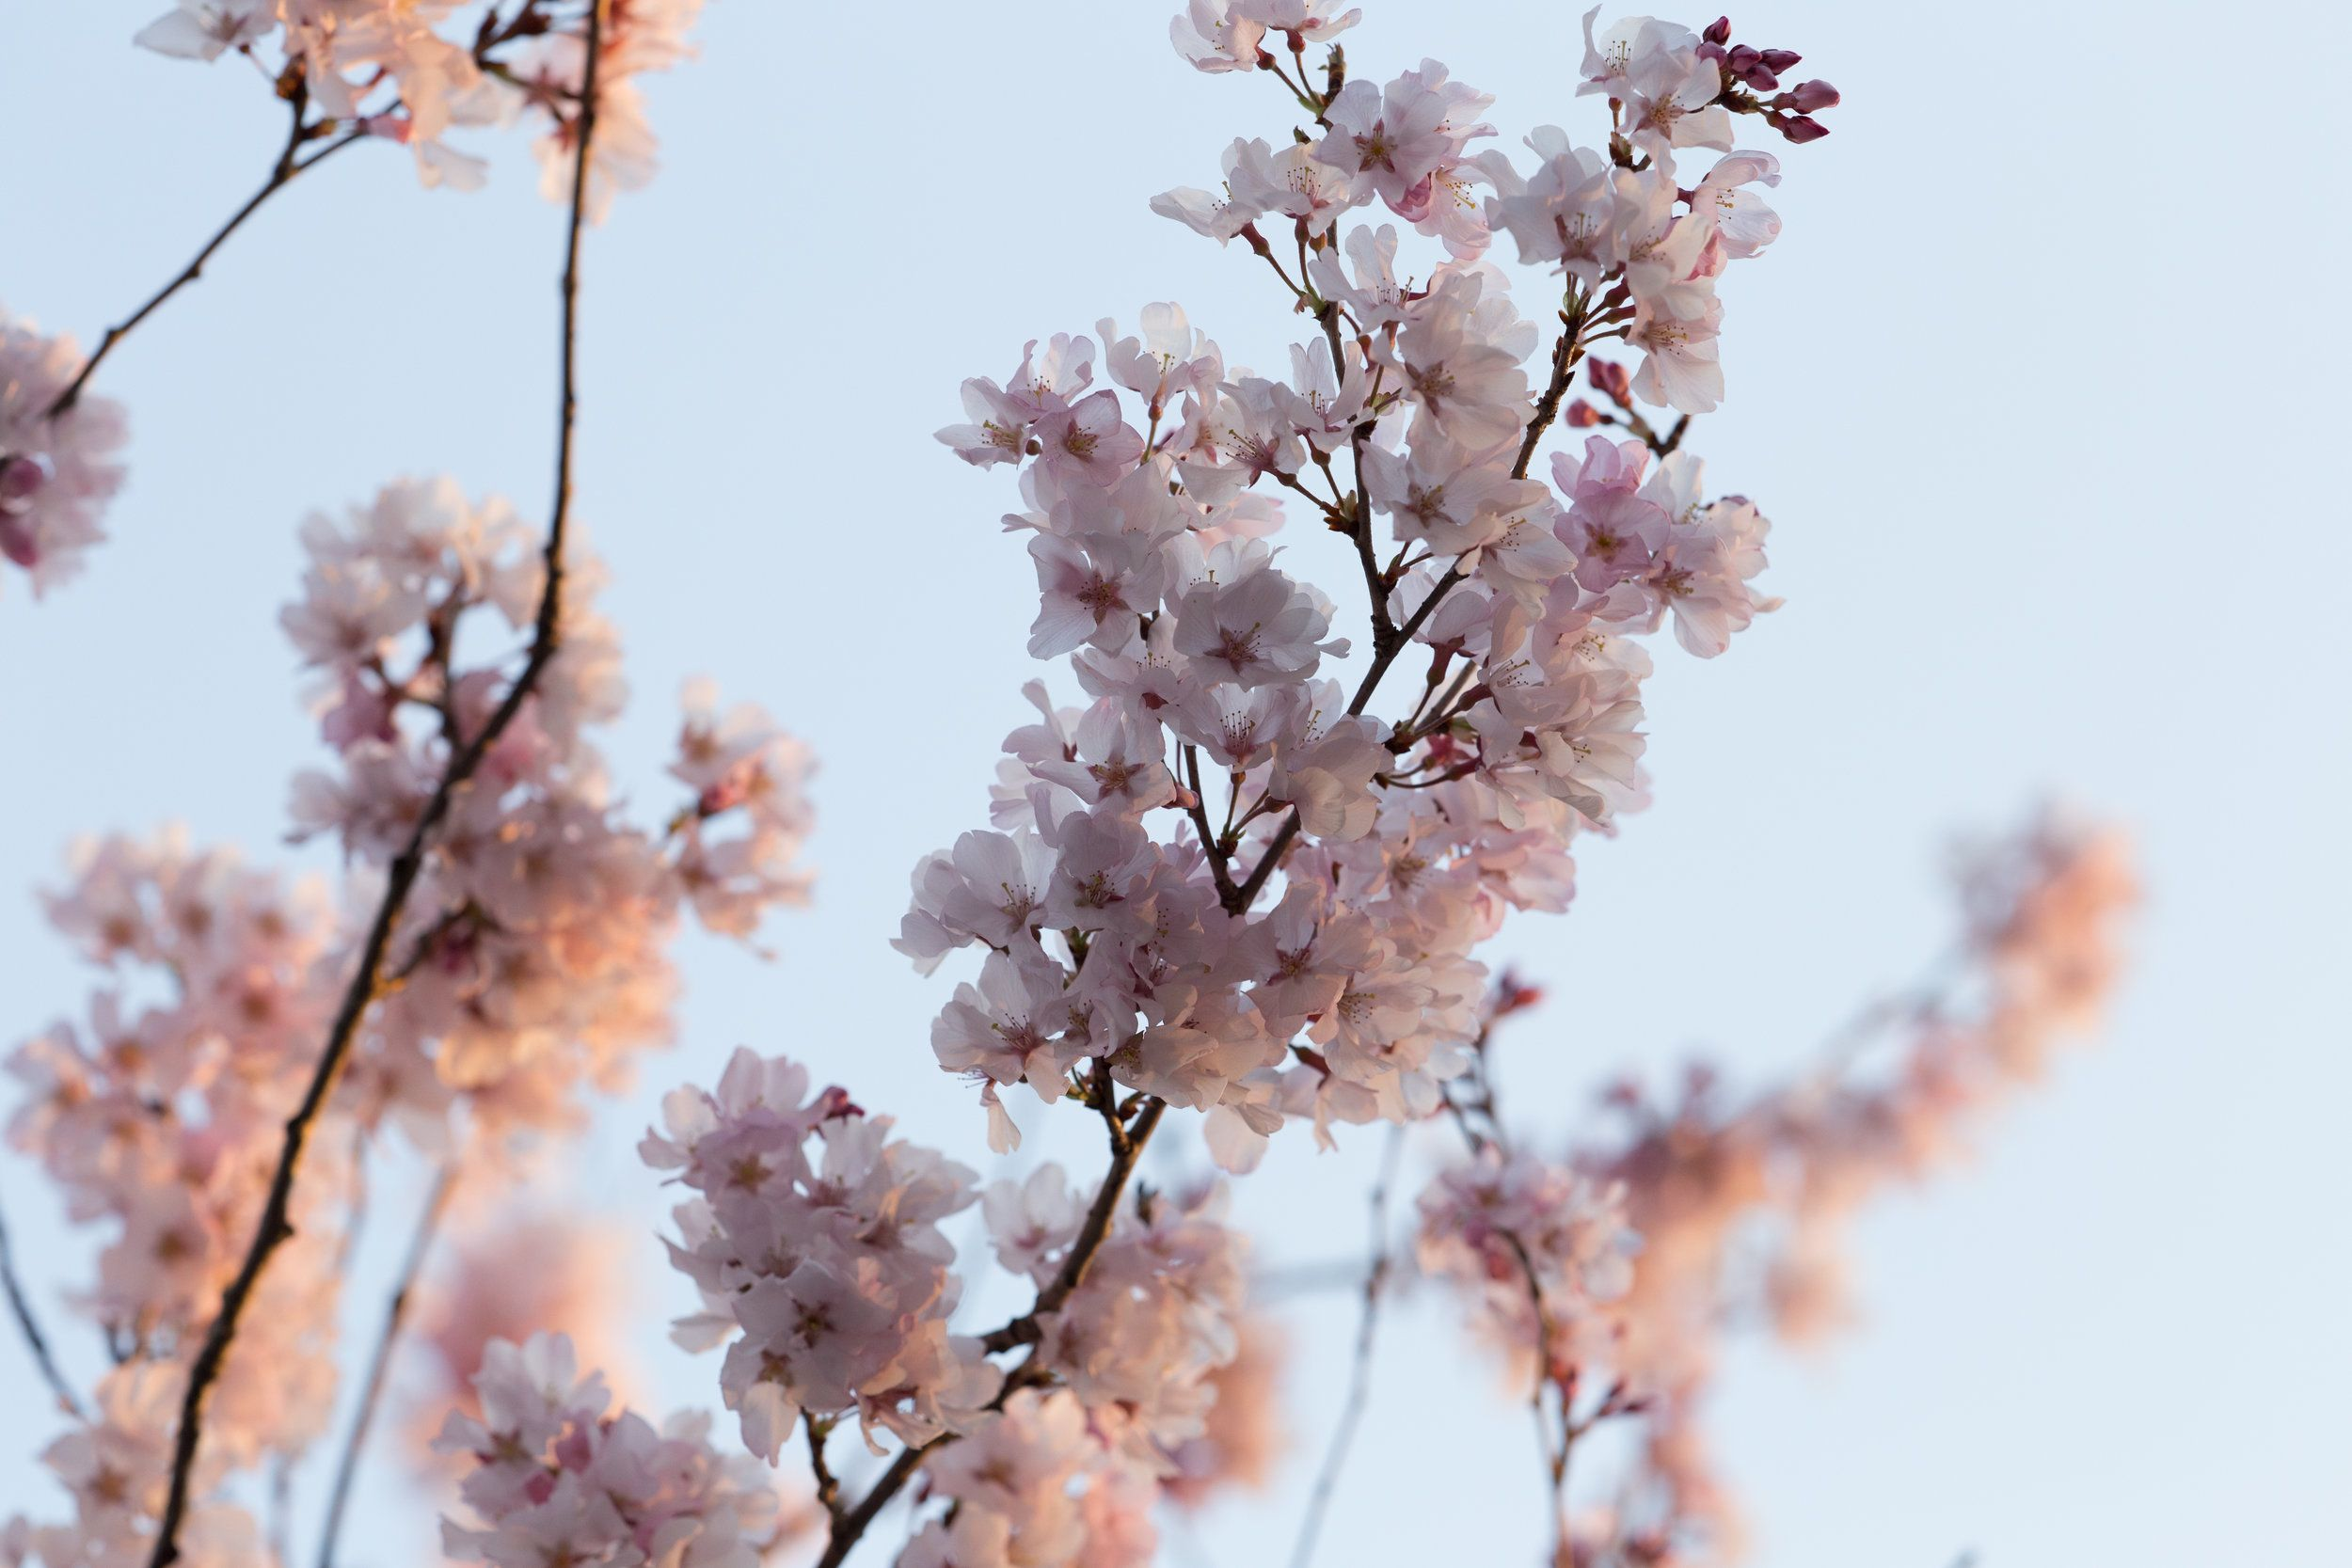 Why Is My Tree Not Blooming Poster Prints Nature Posters Cherry Blossom Branch